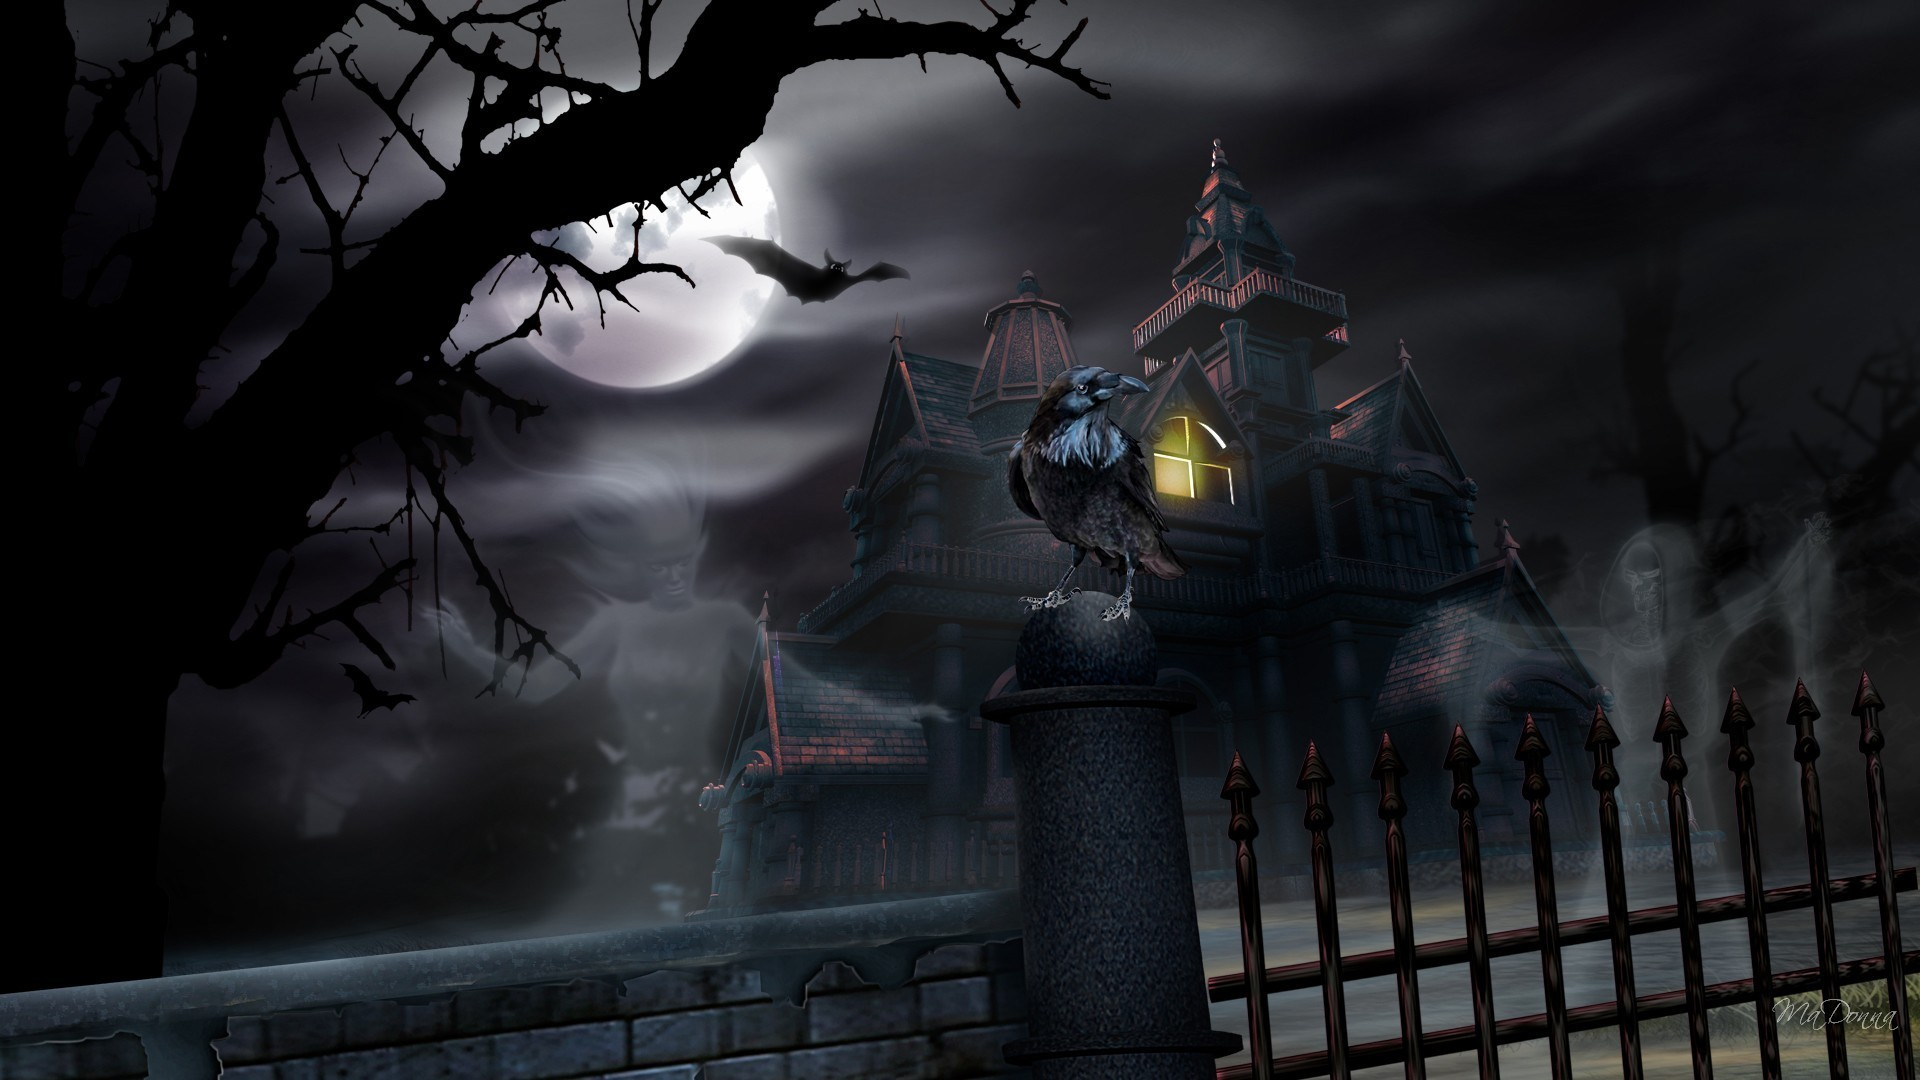 1920x1080 Haunted Halloween House - Other Wallpaper ID 805988 - Desktop Nexus Nature